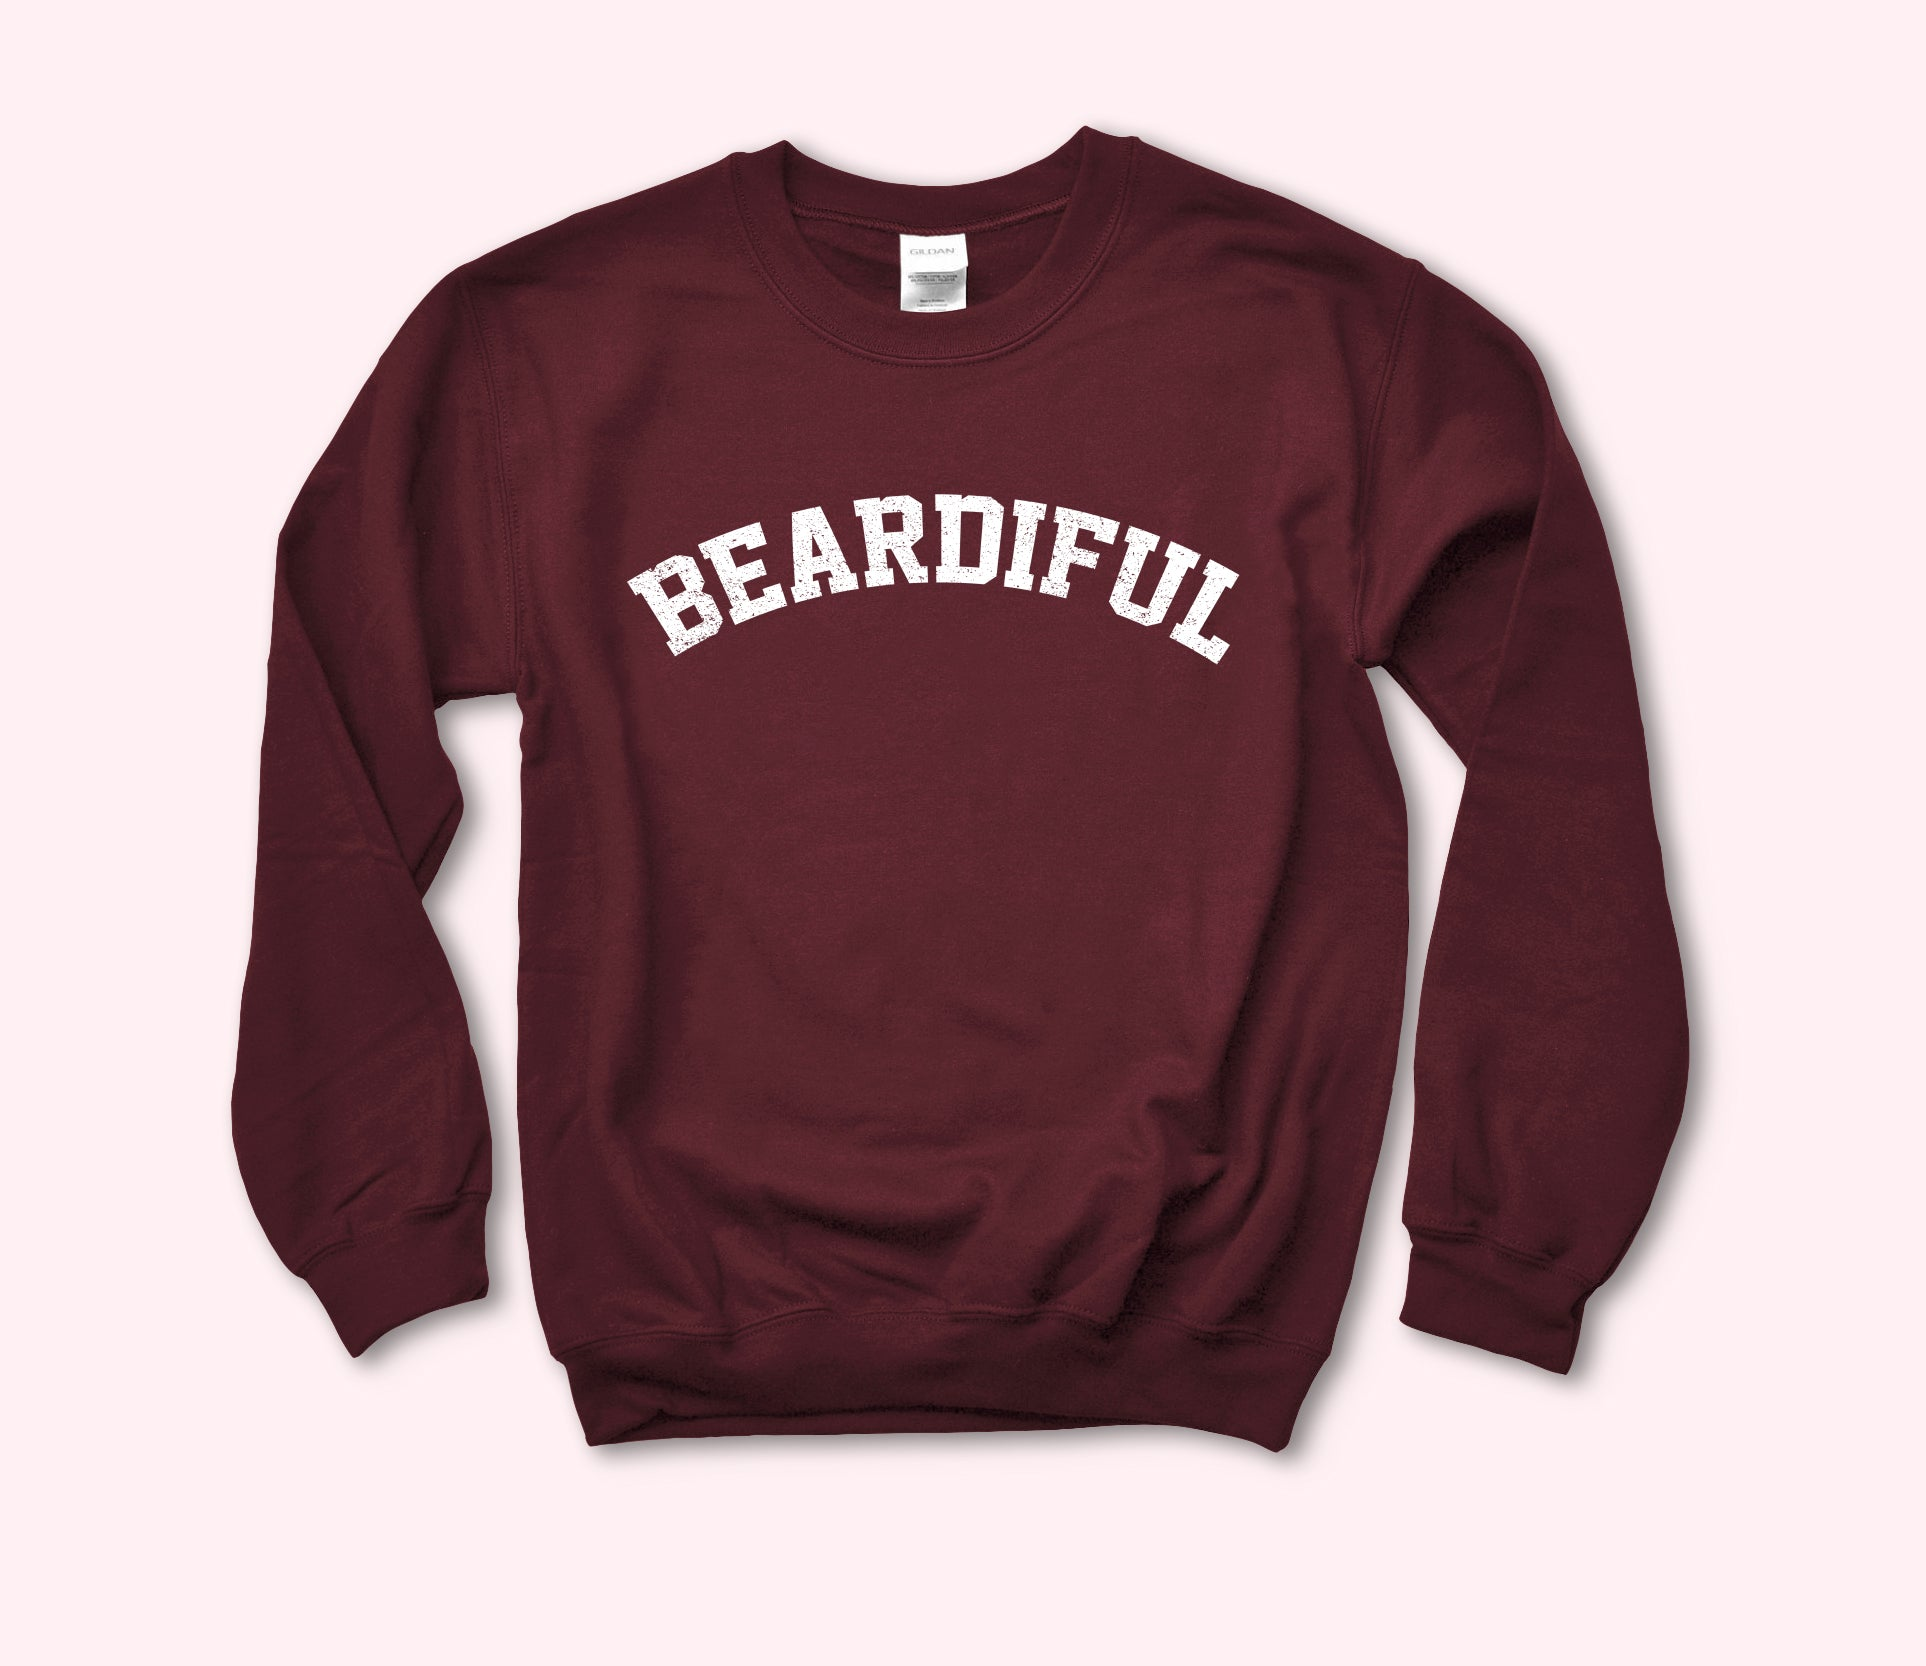 Beardiful Sweatshirt